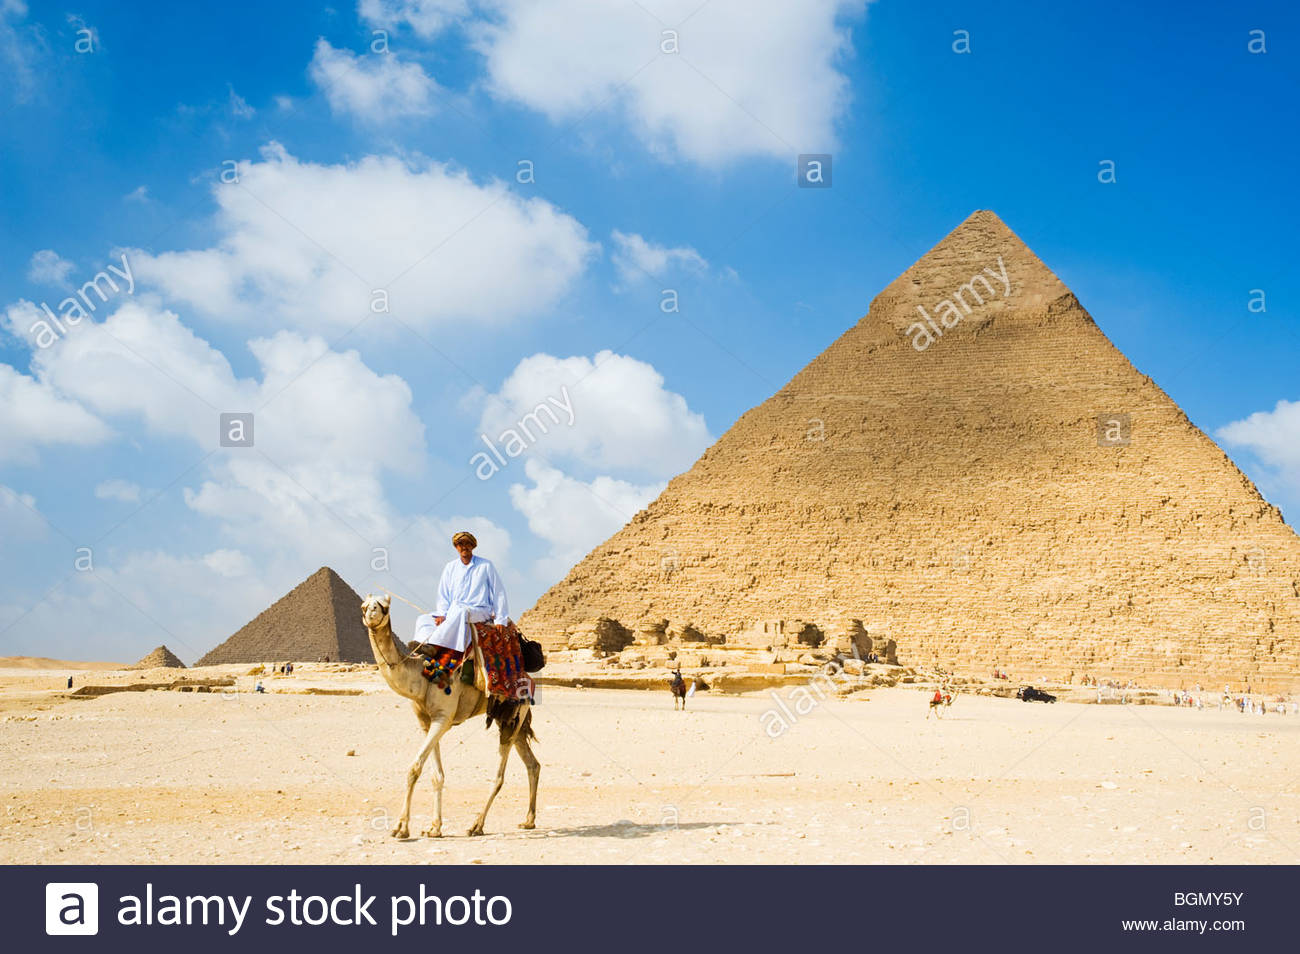 Guide on camel at the Great Pyramids of Giza, Cairo, Egypt. - Stock Image